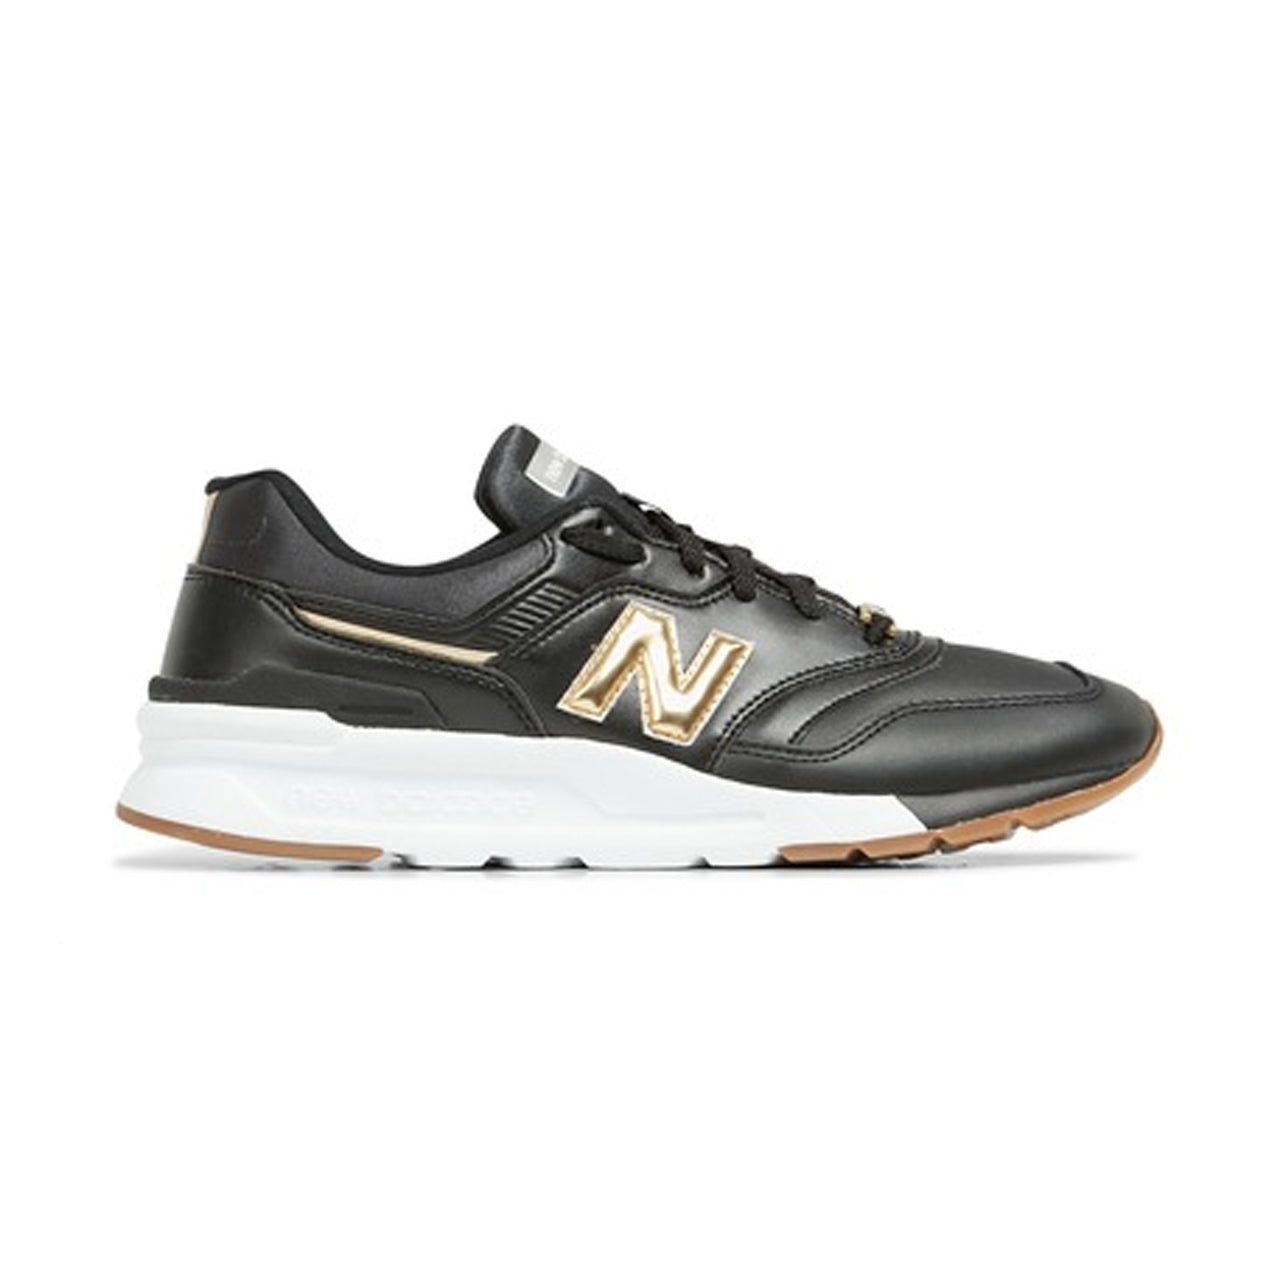 New Balance - Women's 997 HAI - Black/Gold